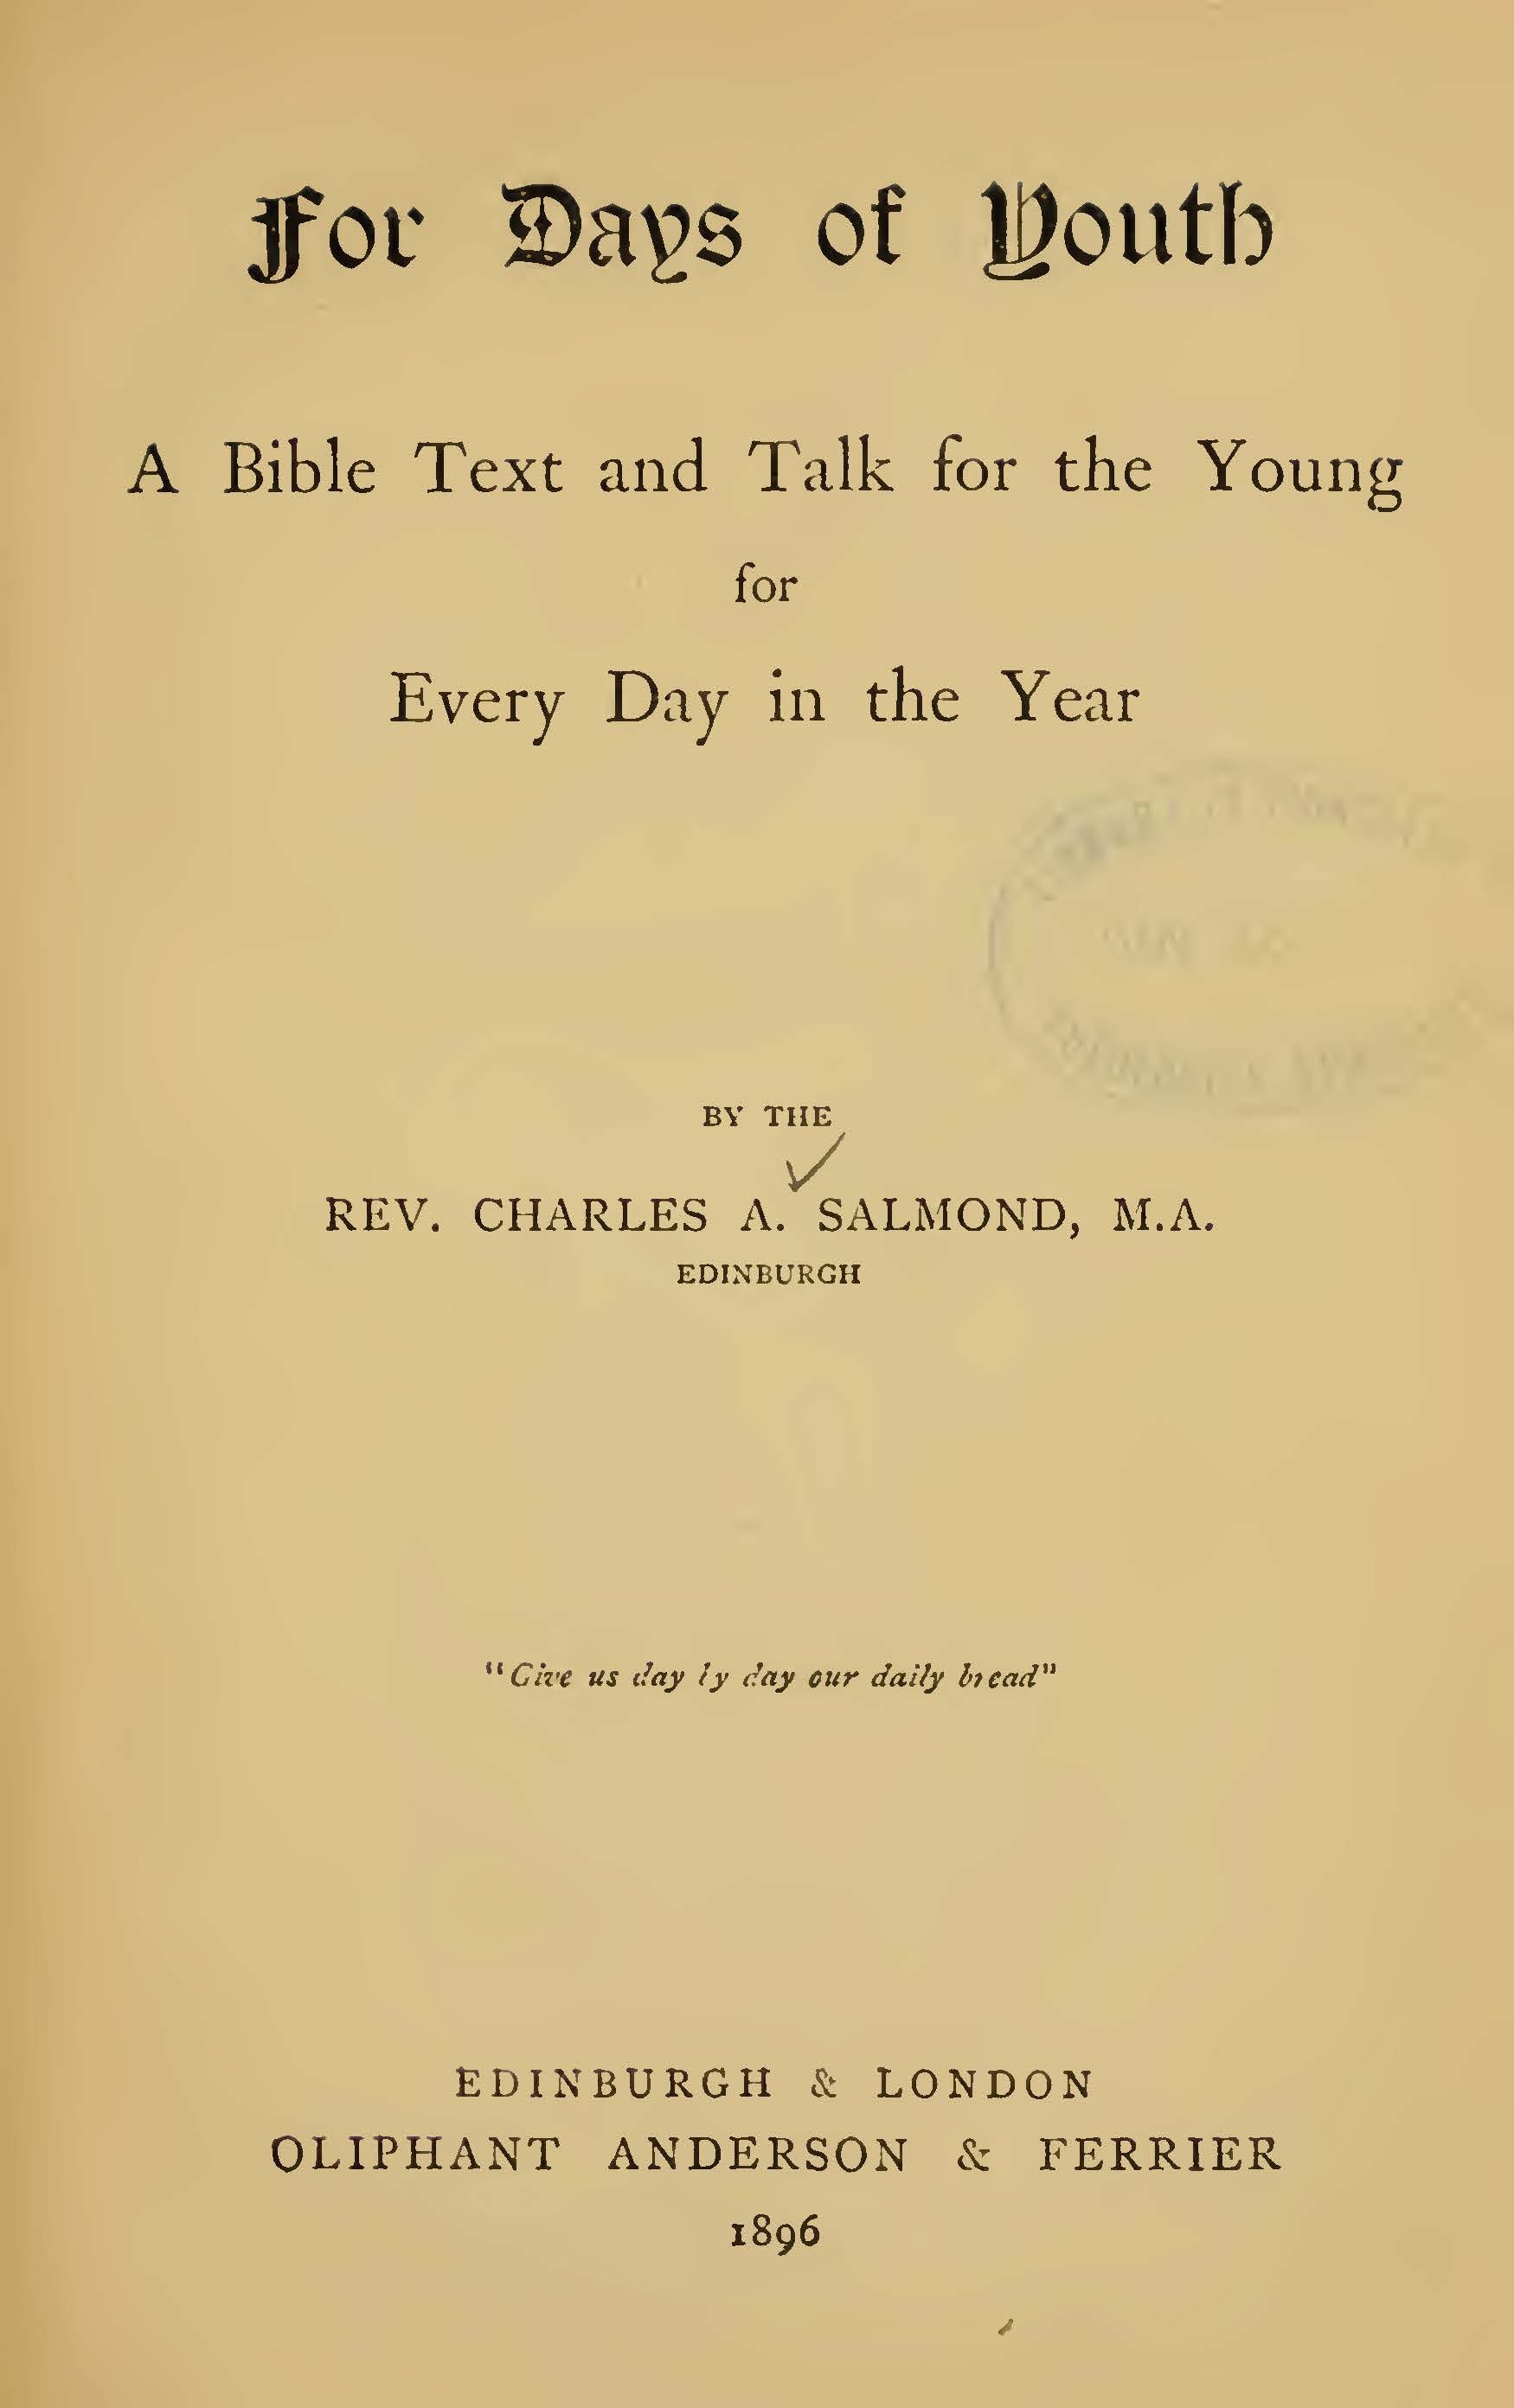 Salmond, Charles Adamson, For Days of Youth Title Page.jpg